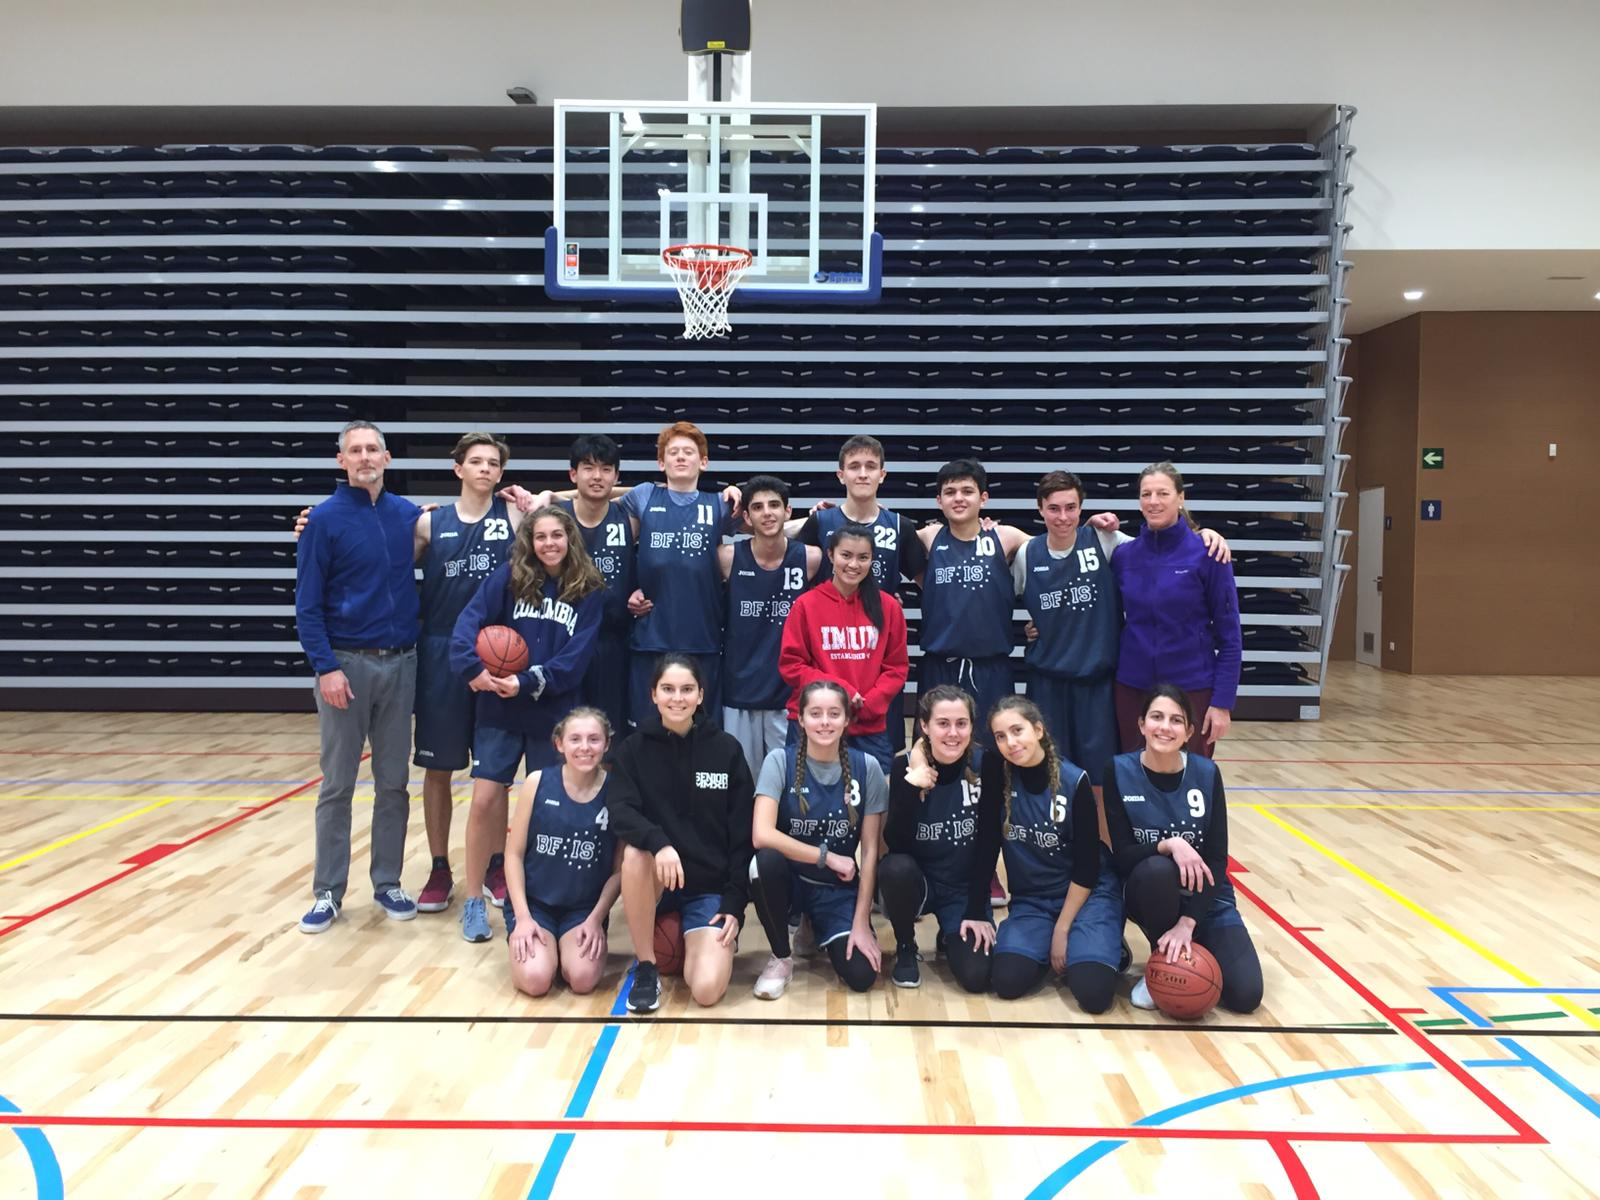 1f736e519 ... Basketball teams participated in the Invitational Basketball Tournament  hosted by the American School of Barcelona. The participating schools  included: